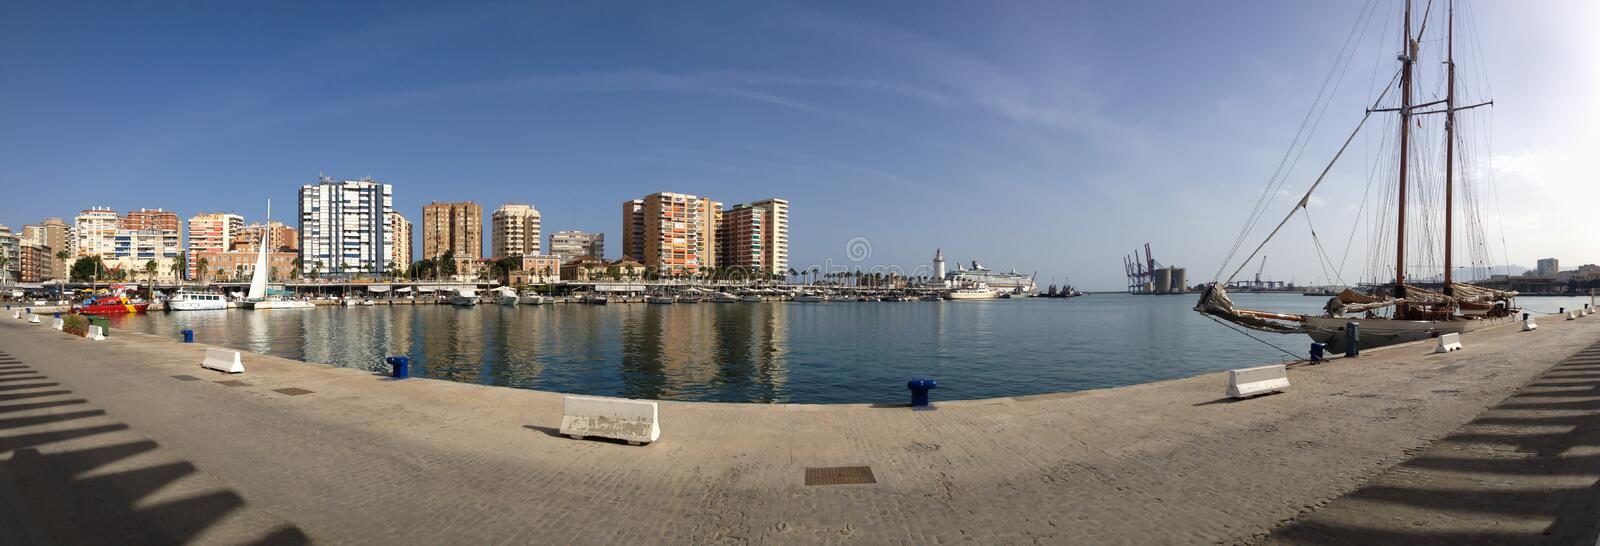 Harbor coastline panorama with the old ship in the city of Malaga in Spain. Harbor coastline panorama with sailing ship in the city of Malaga in Spain, harbour stock image